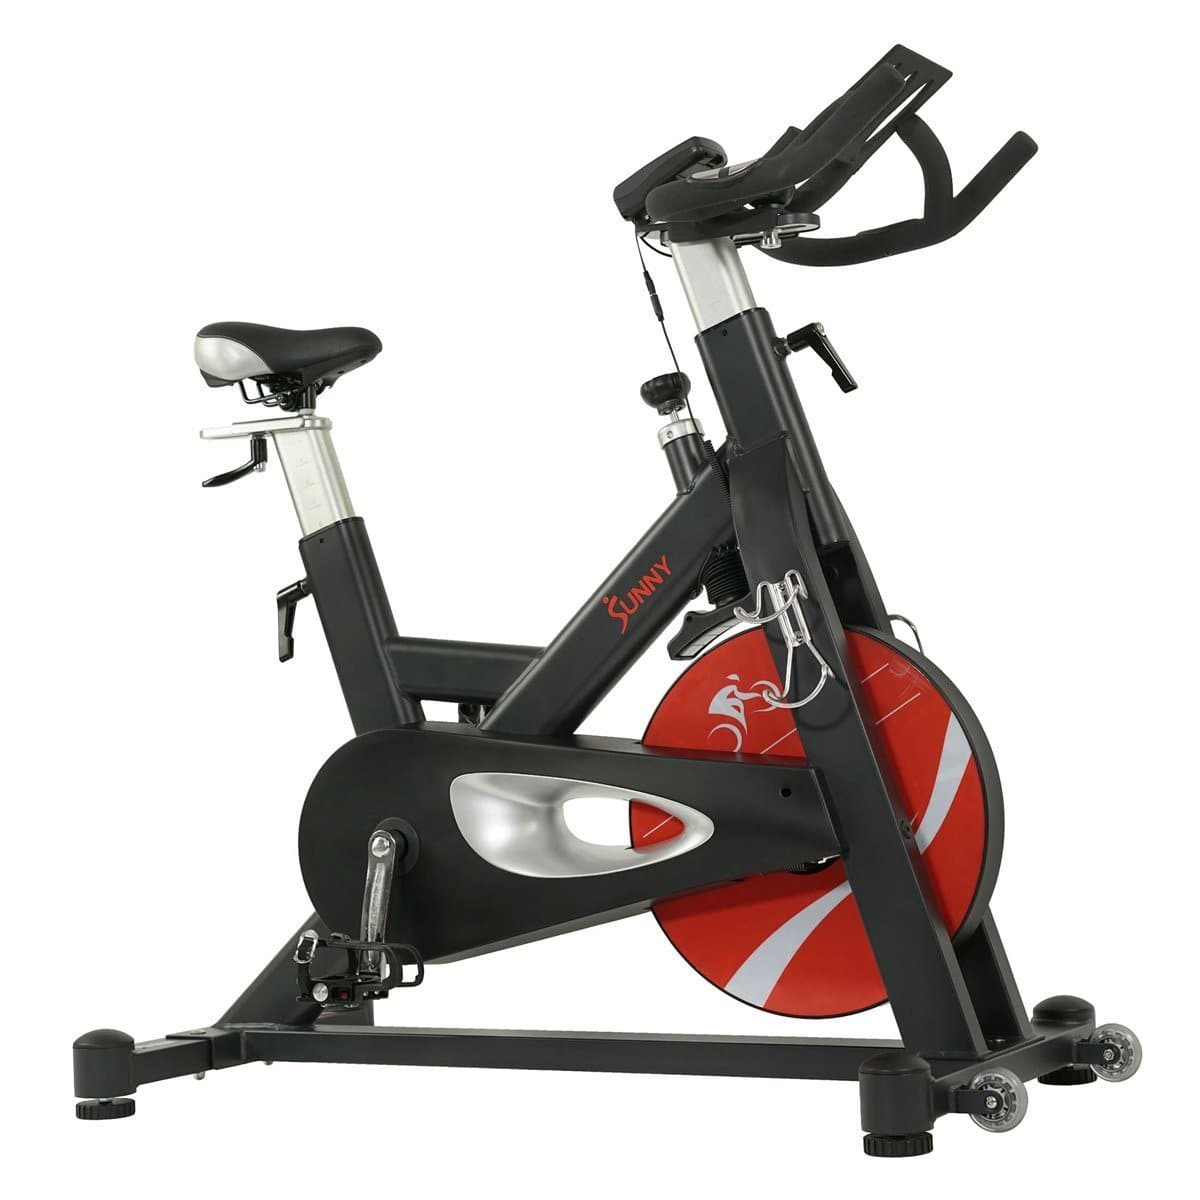 Evolution Pro II Magnetic Indoor Cycle Cardio Training Sunny Health and Fitness